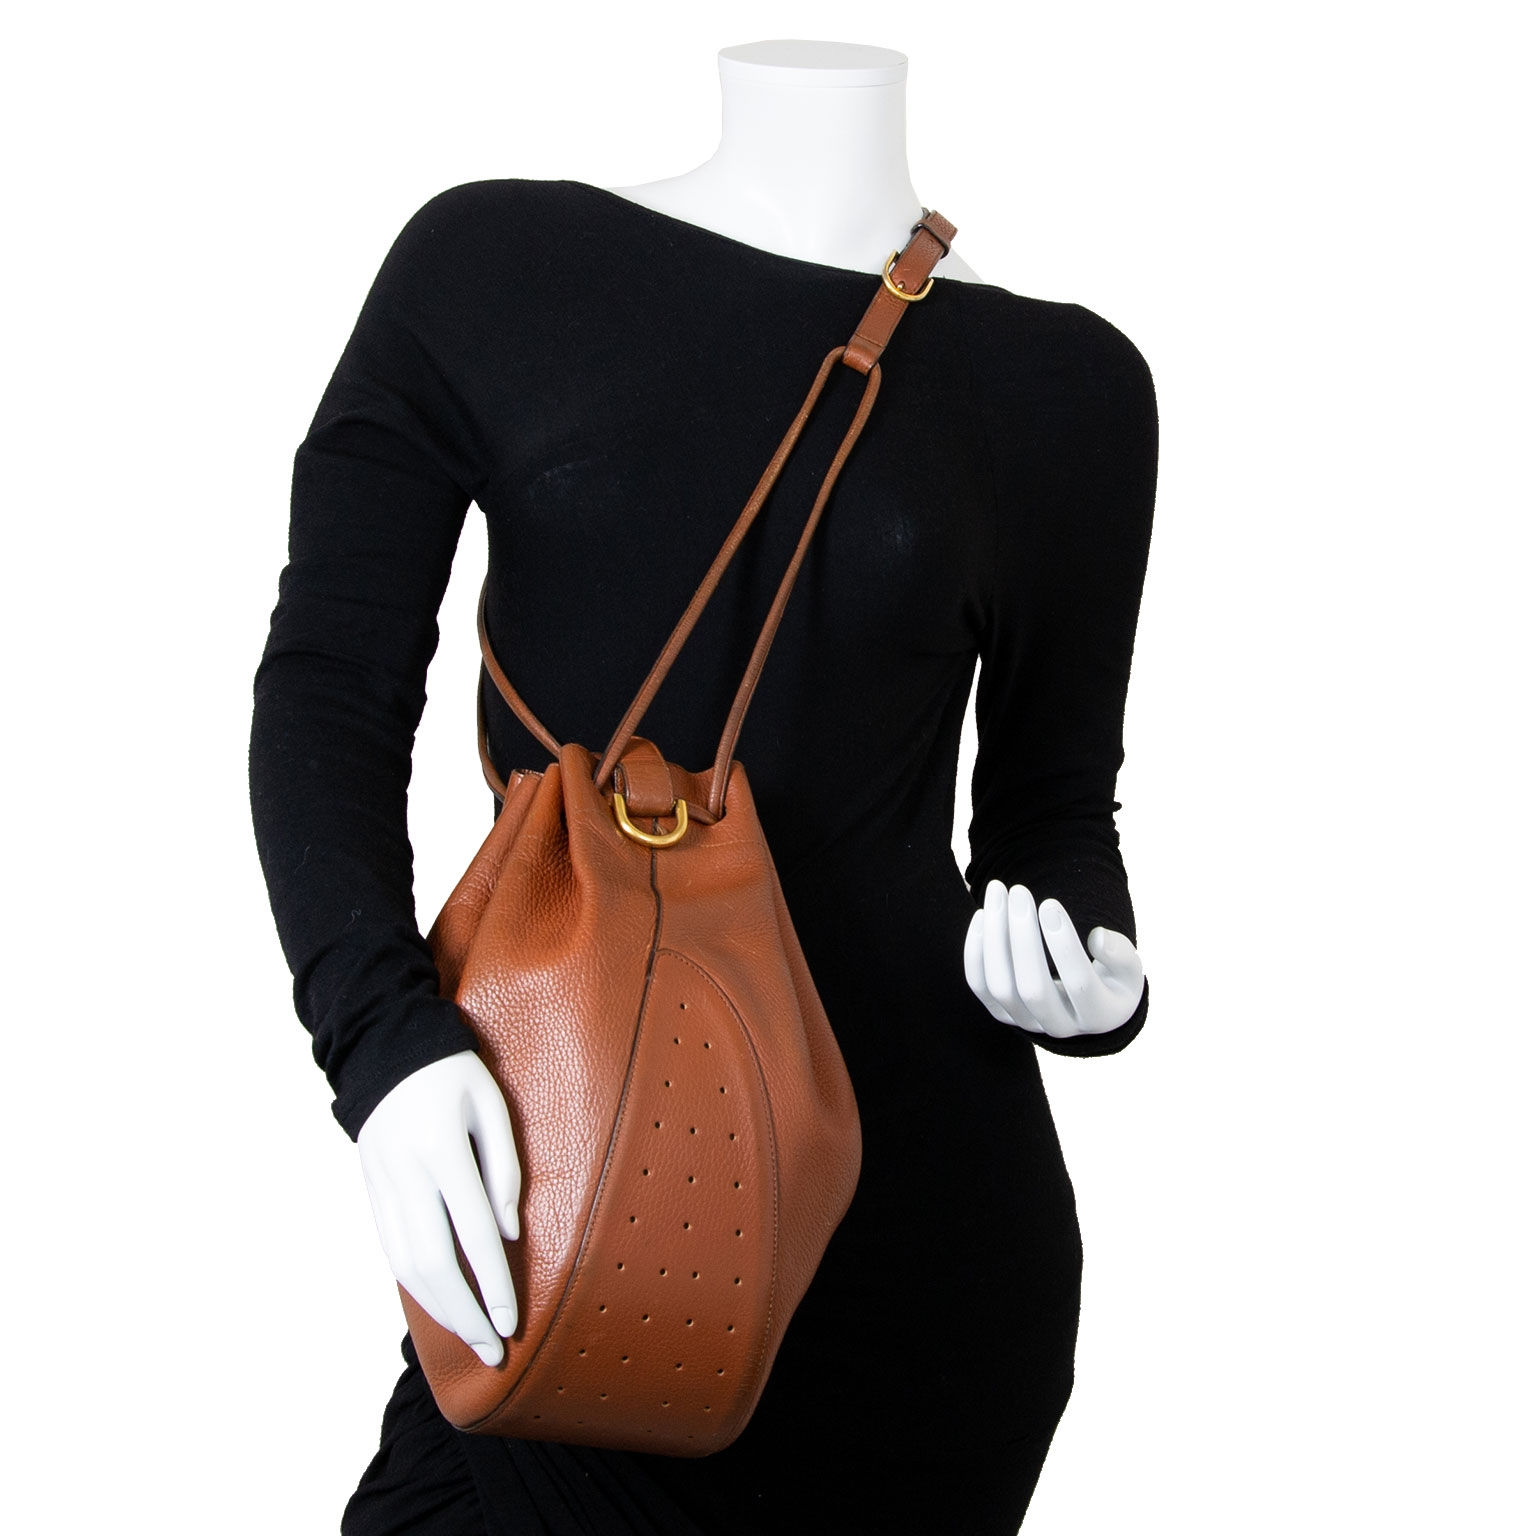 delvaux brown leather drawstring bag now for sale at labellov vintage fashion webshop belgium